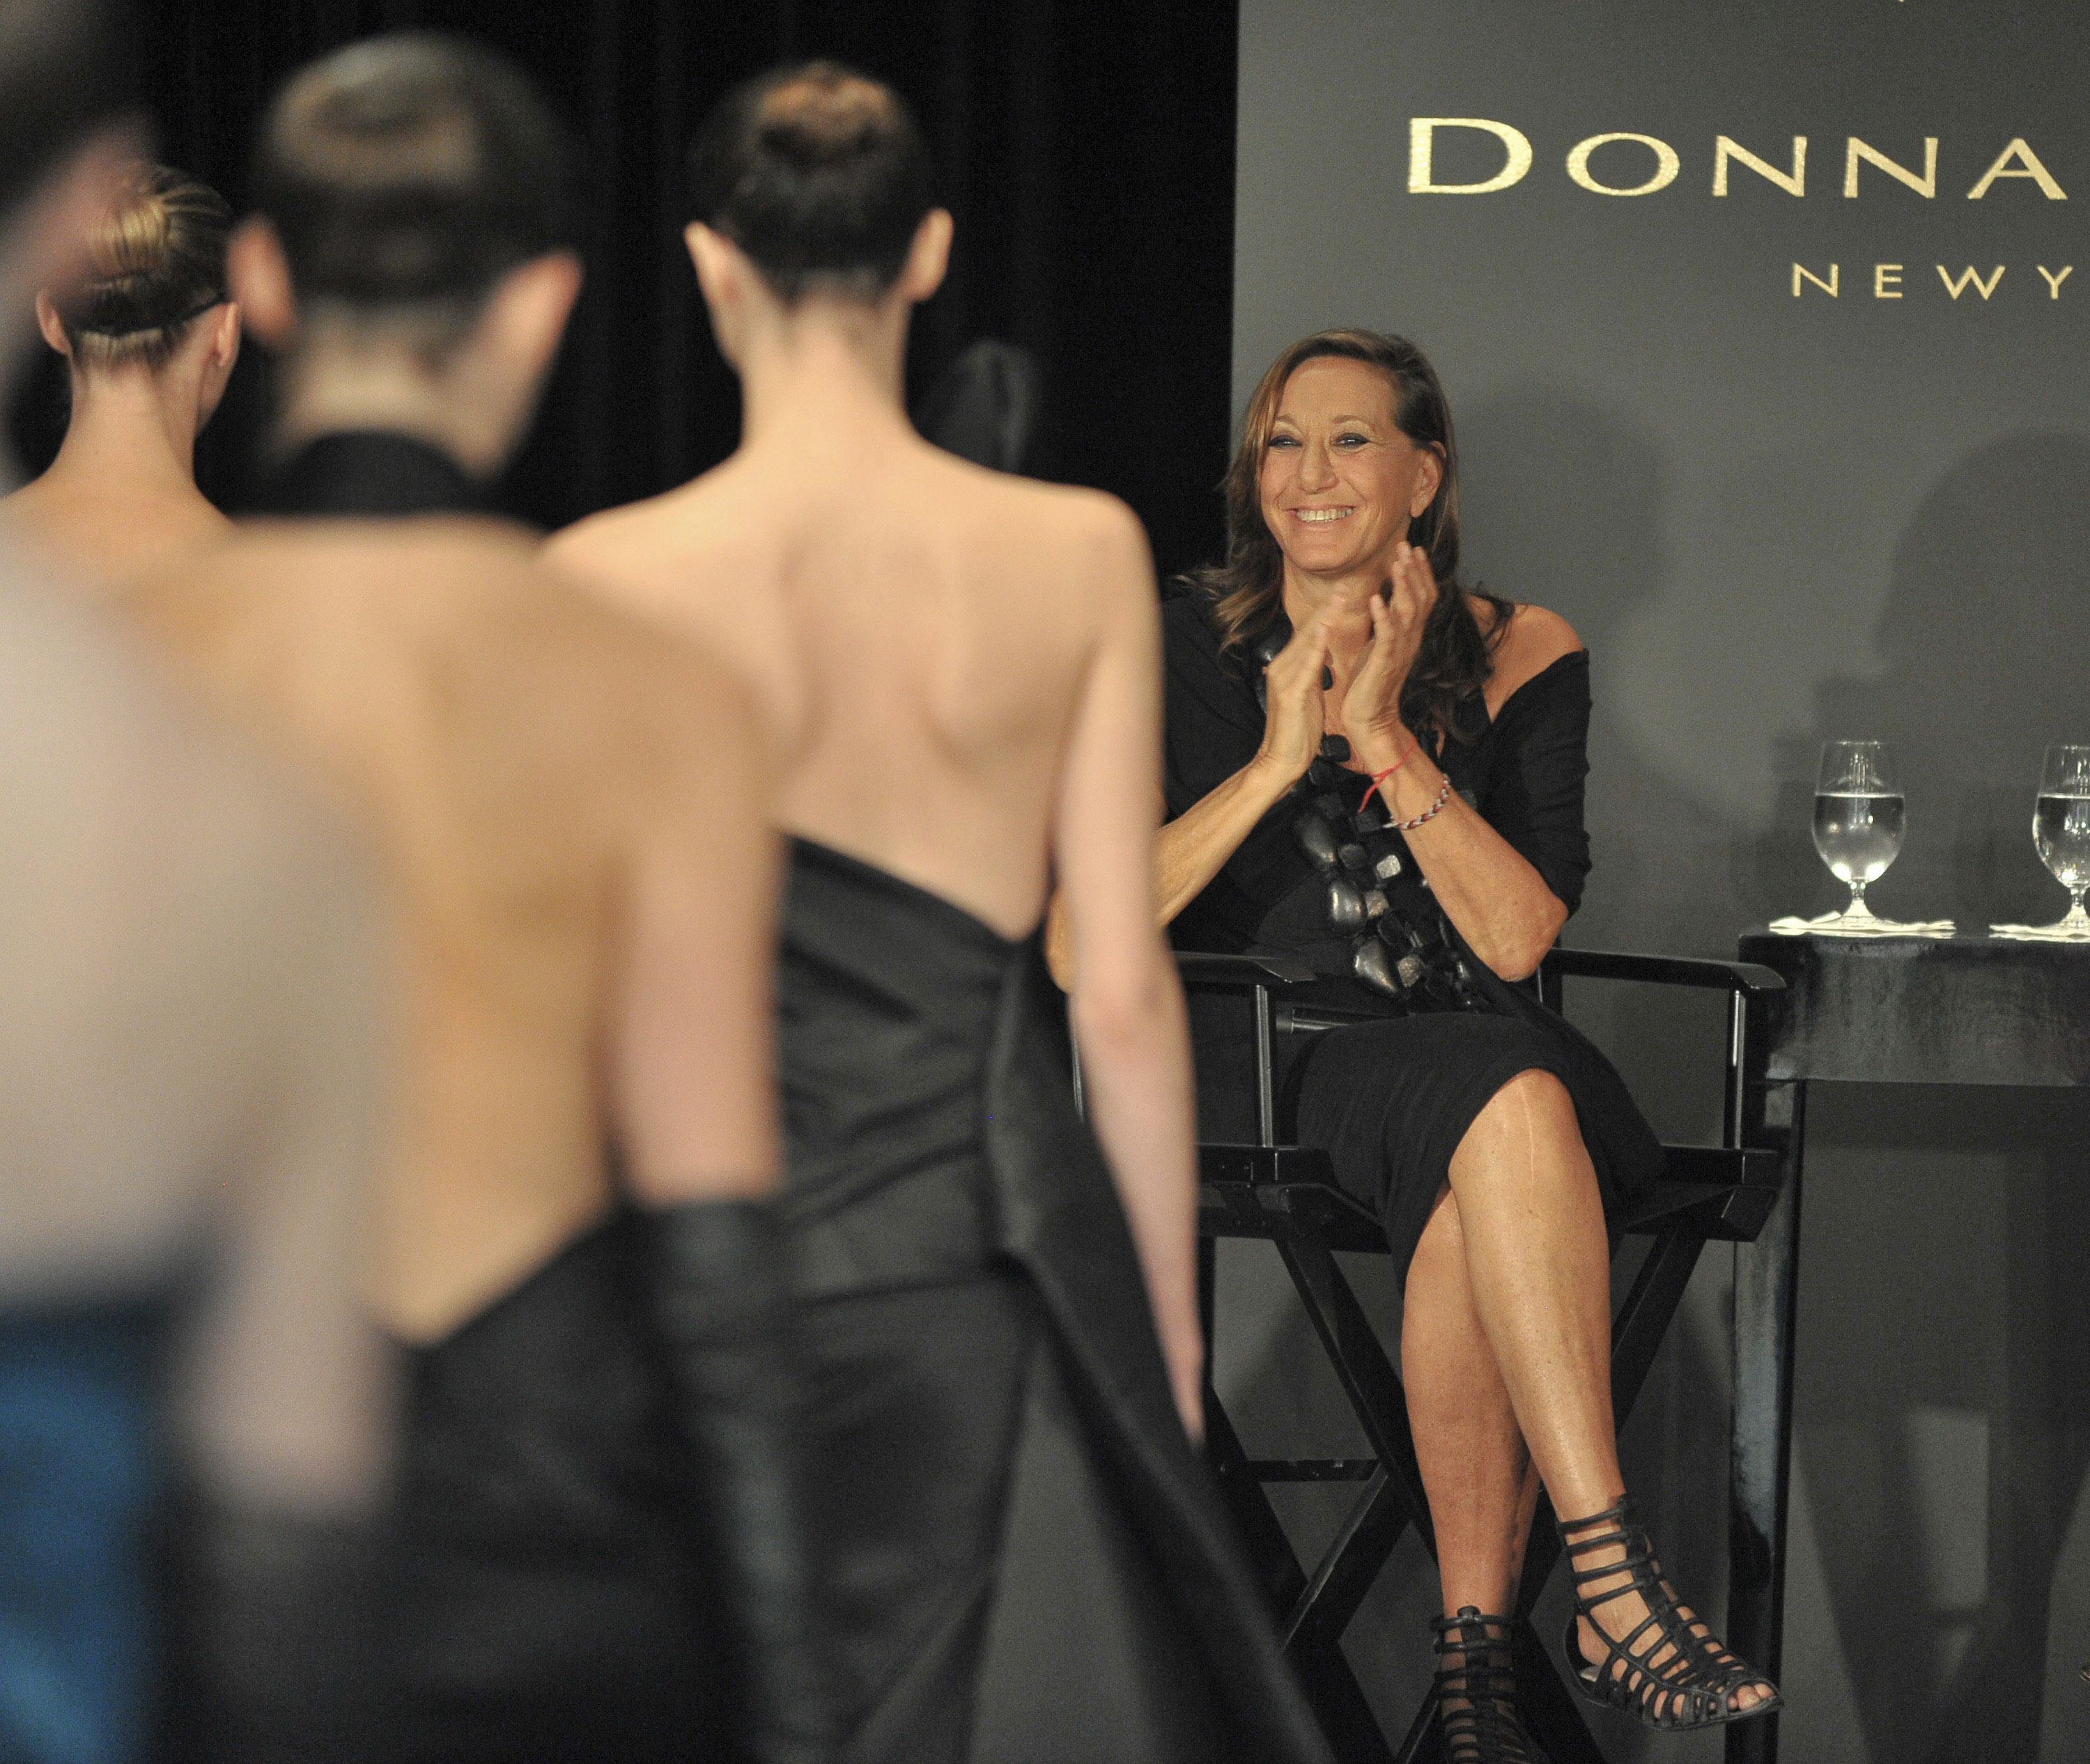 Donna Karan, models final walk